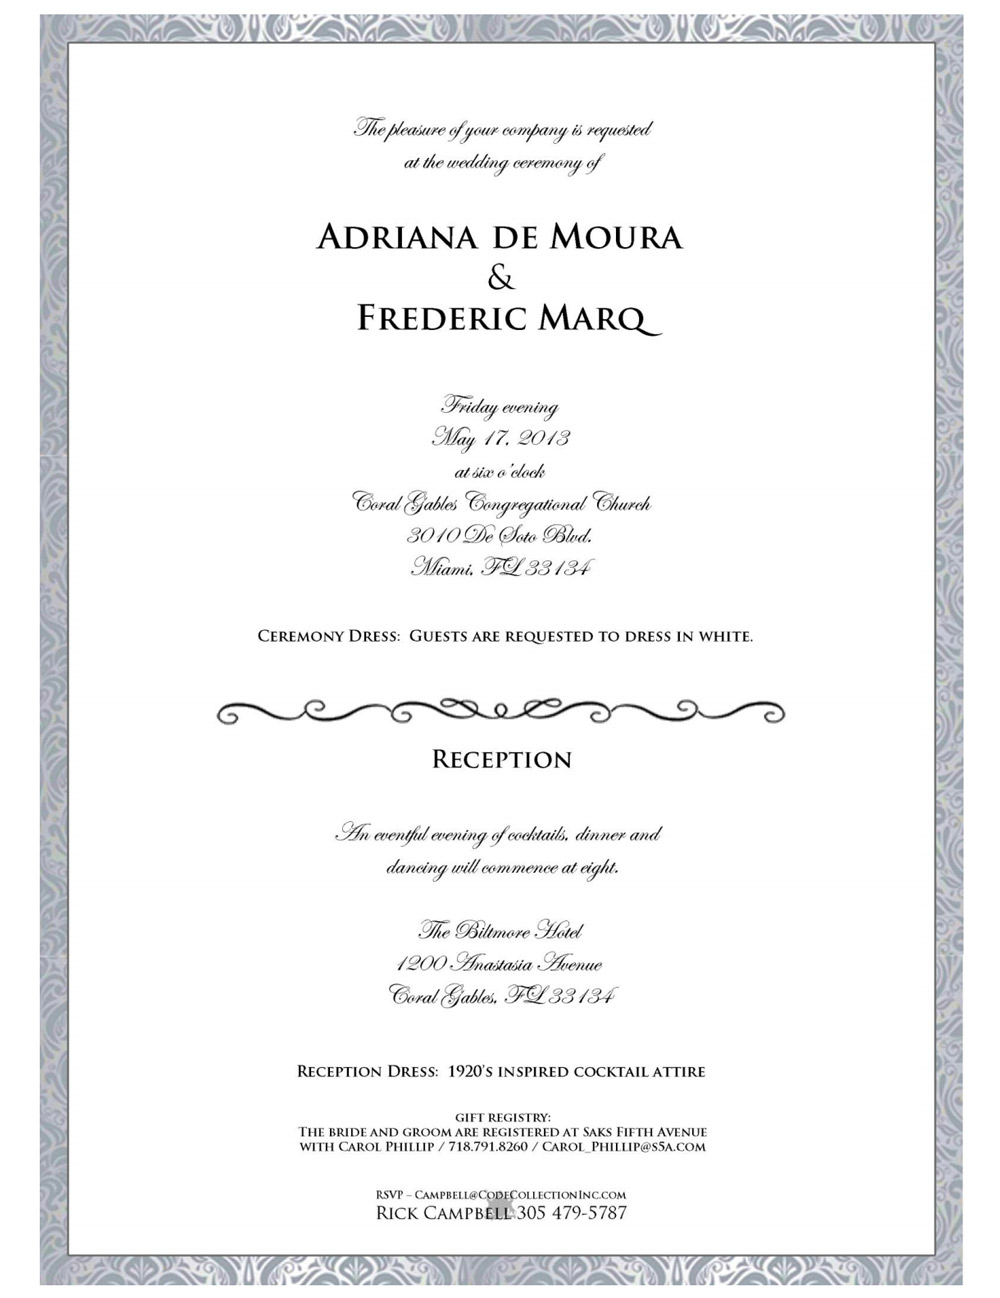 Adriana de Moura Demands Wedding Guests Wear… What? See the Invite!